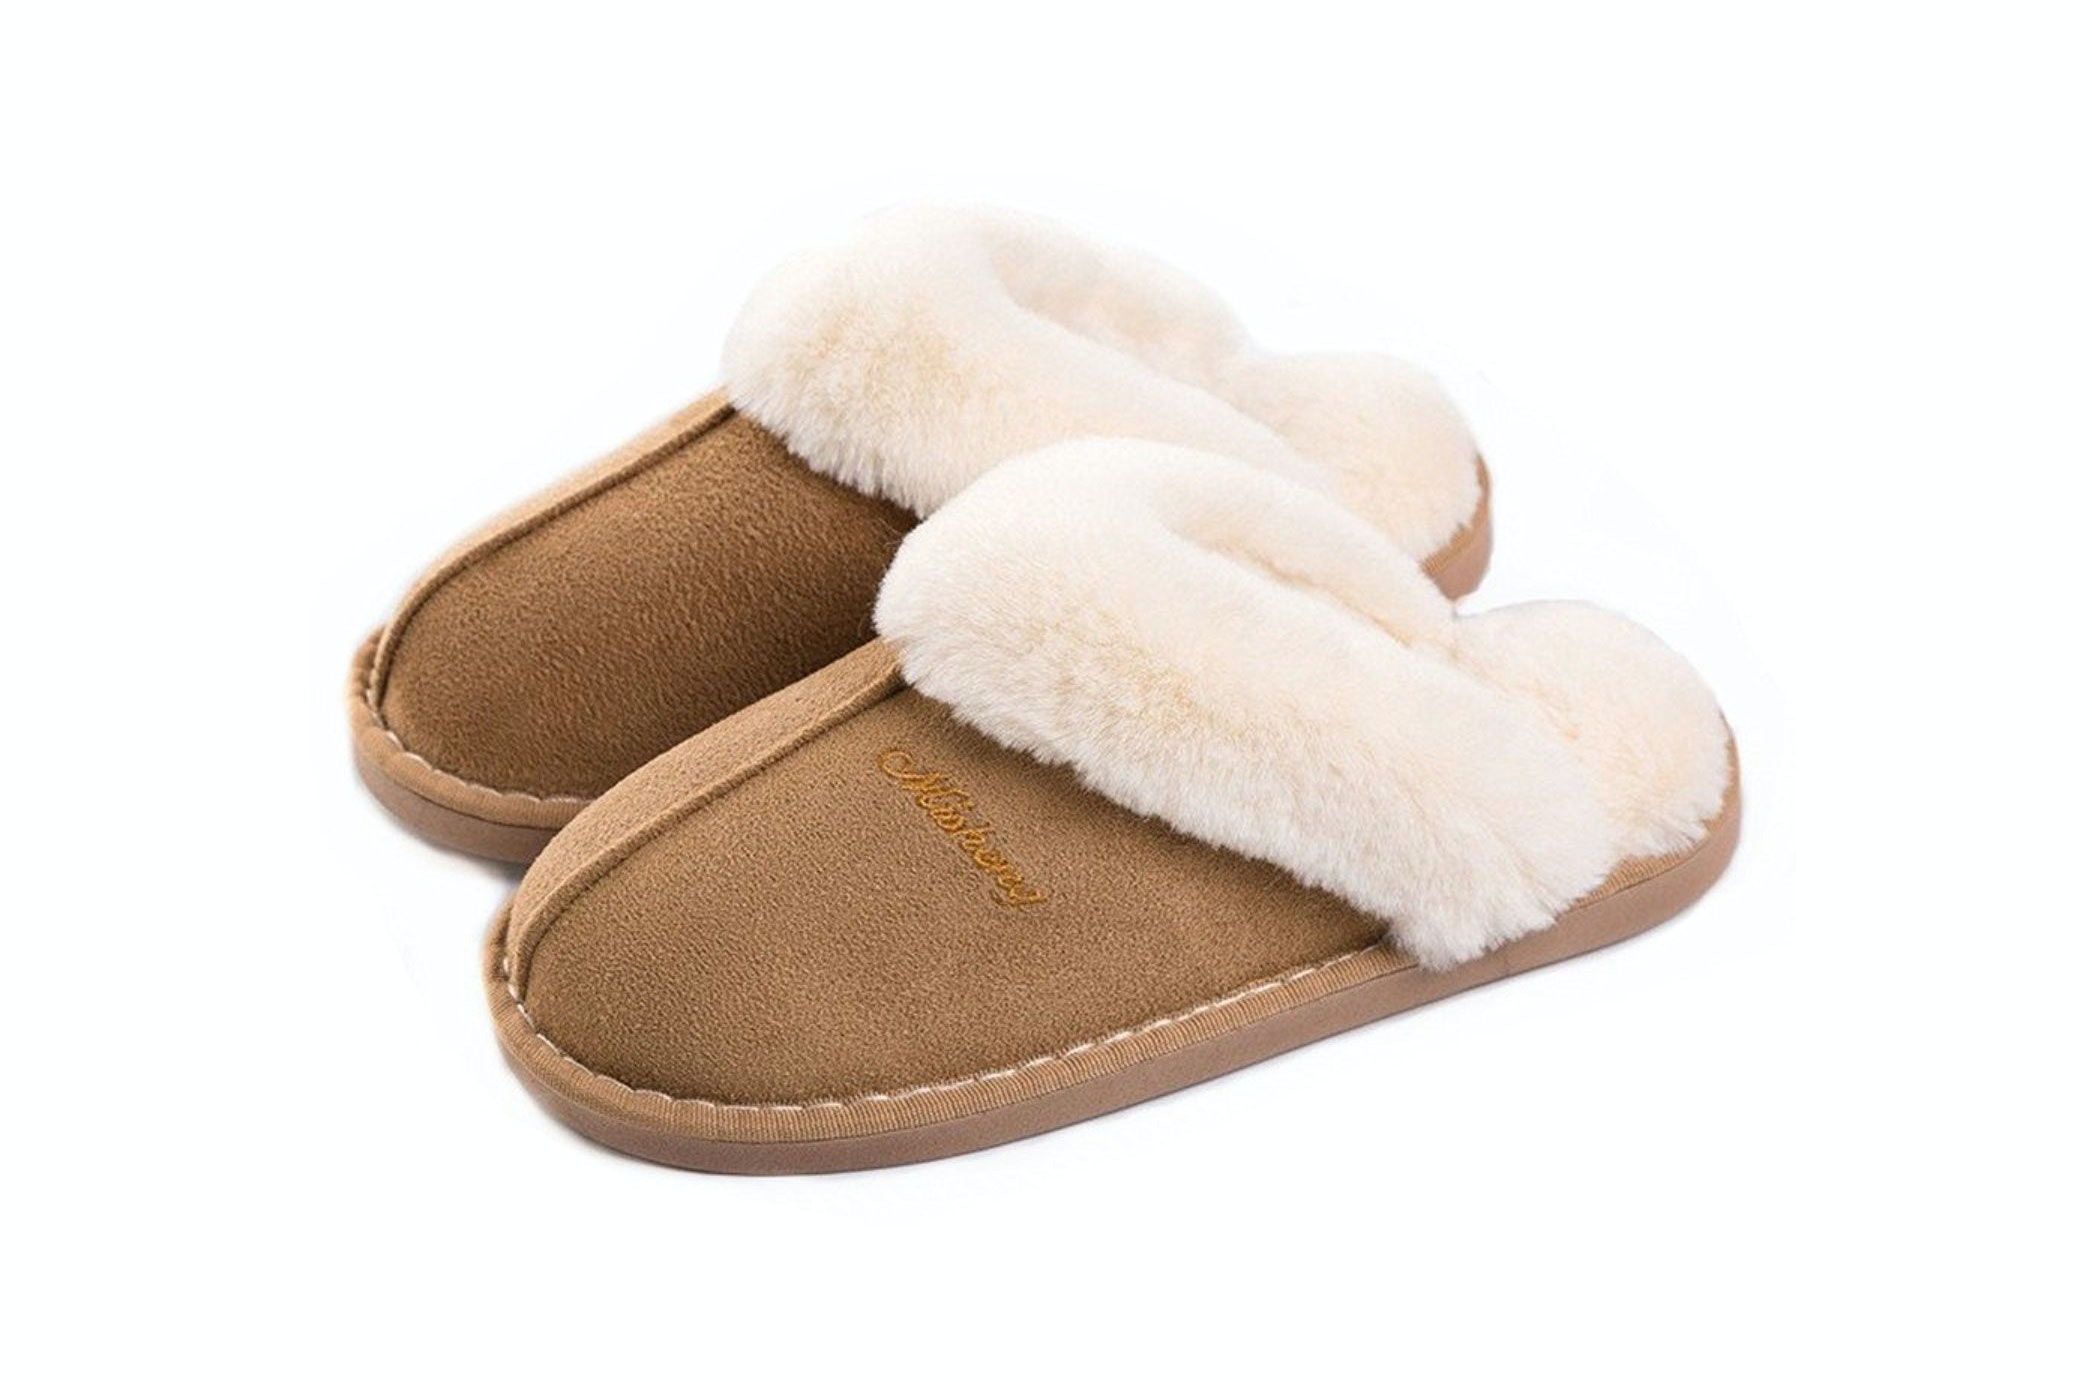 035d9963a The 7 Most Comfortable Slippers For Women